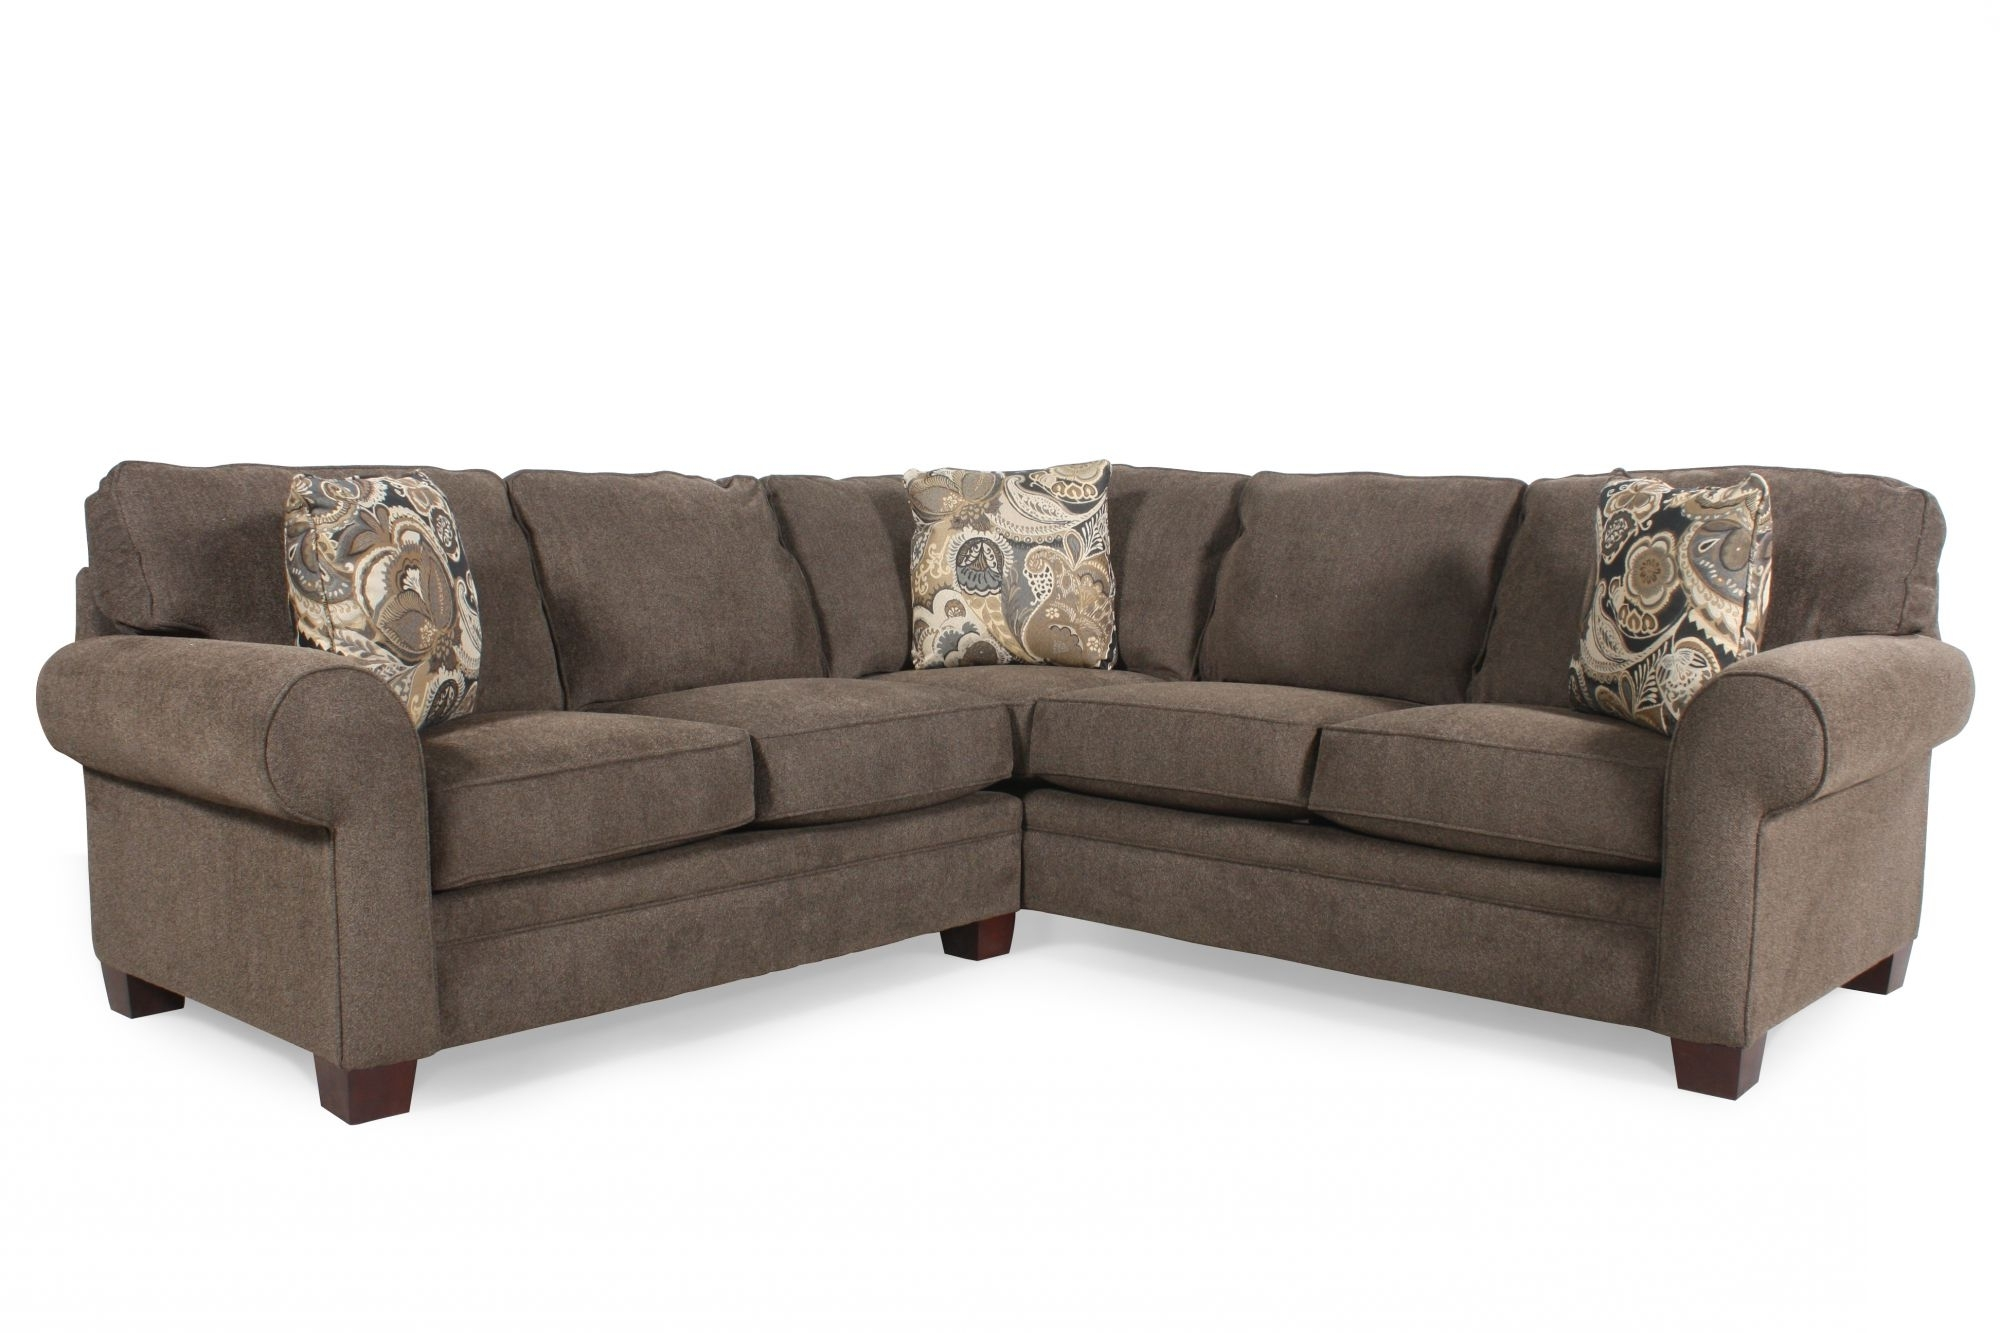 Broyhill Sectional Sofa (View 10 of 15)